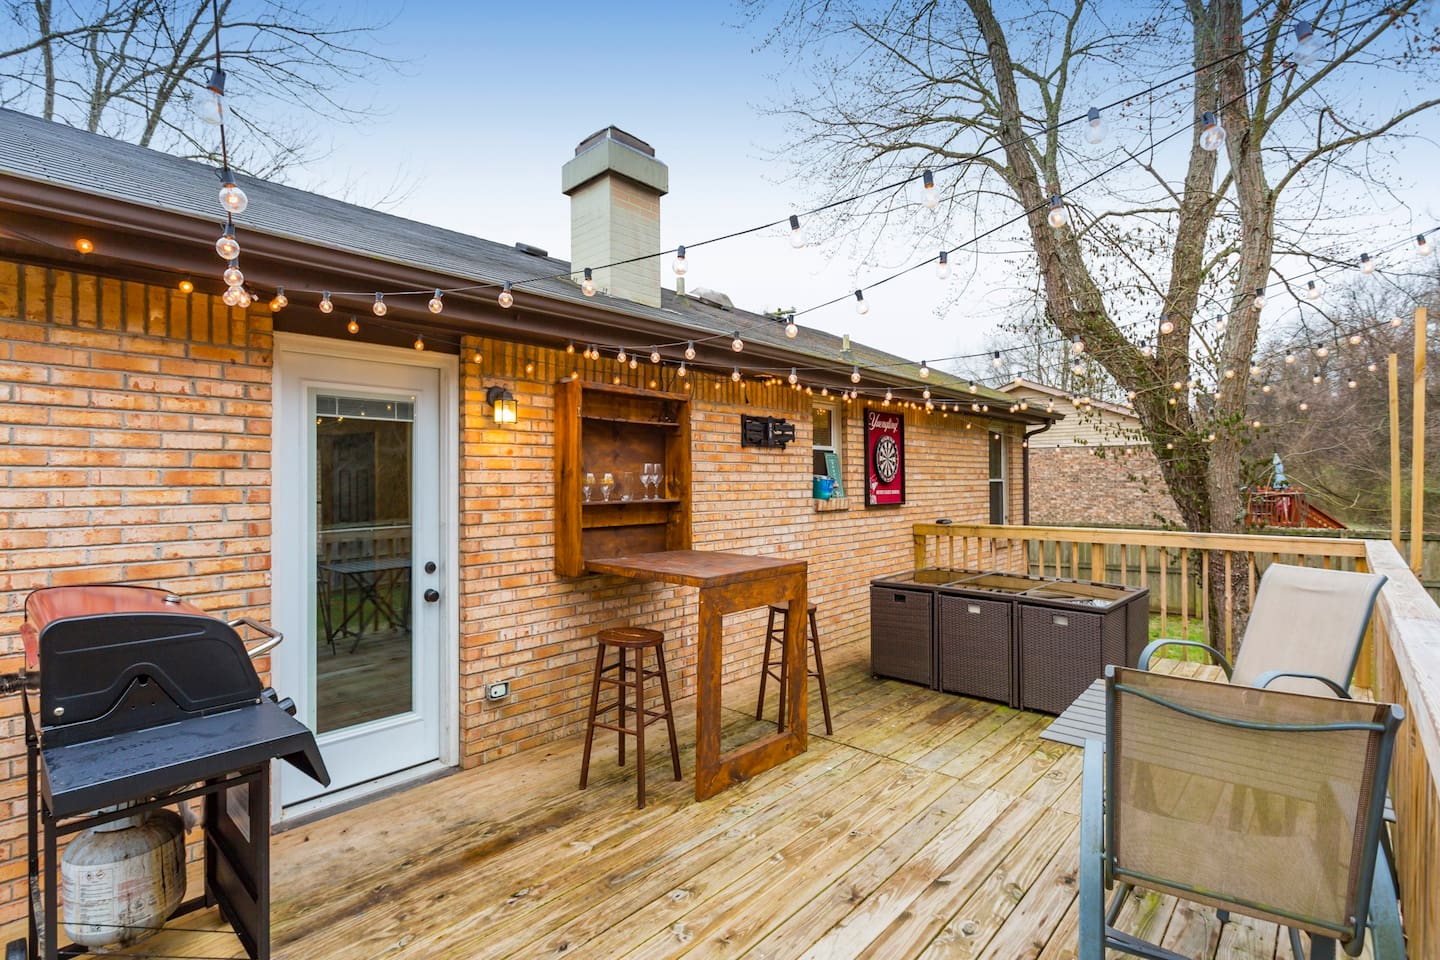 """This 3 bedroom, 2 bath house also has a HUGE deck with seating for 8, a drink rail, a grill, a fold out bar top, darts AND cornhole boards! You can """"pre-game"""" before going downtown, and enjoy the privacy and serenity of the backyard each morning."""